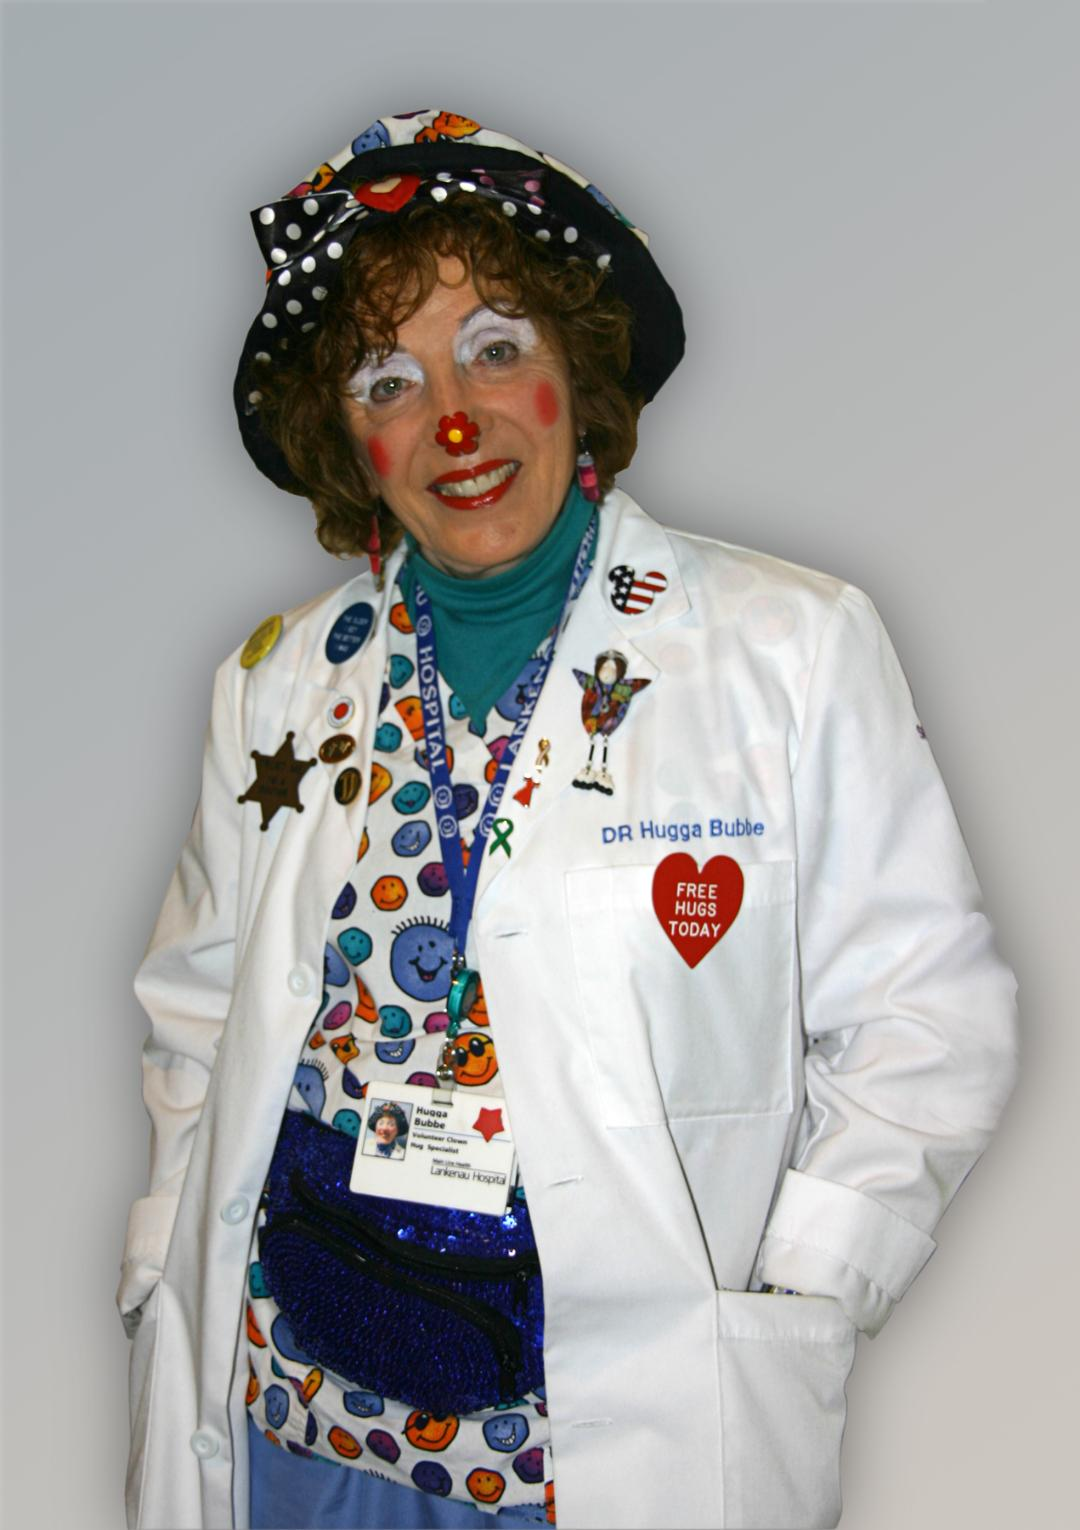 Clown with colorful shirt.